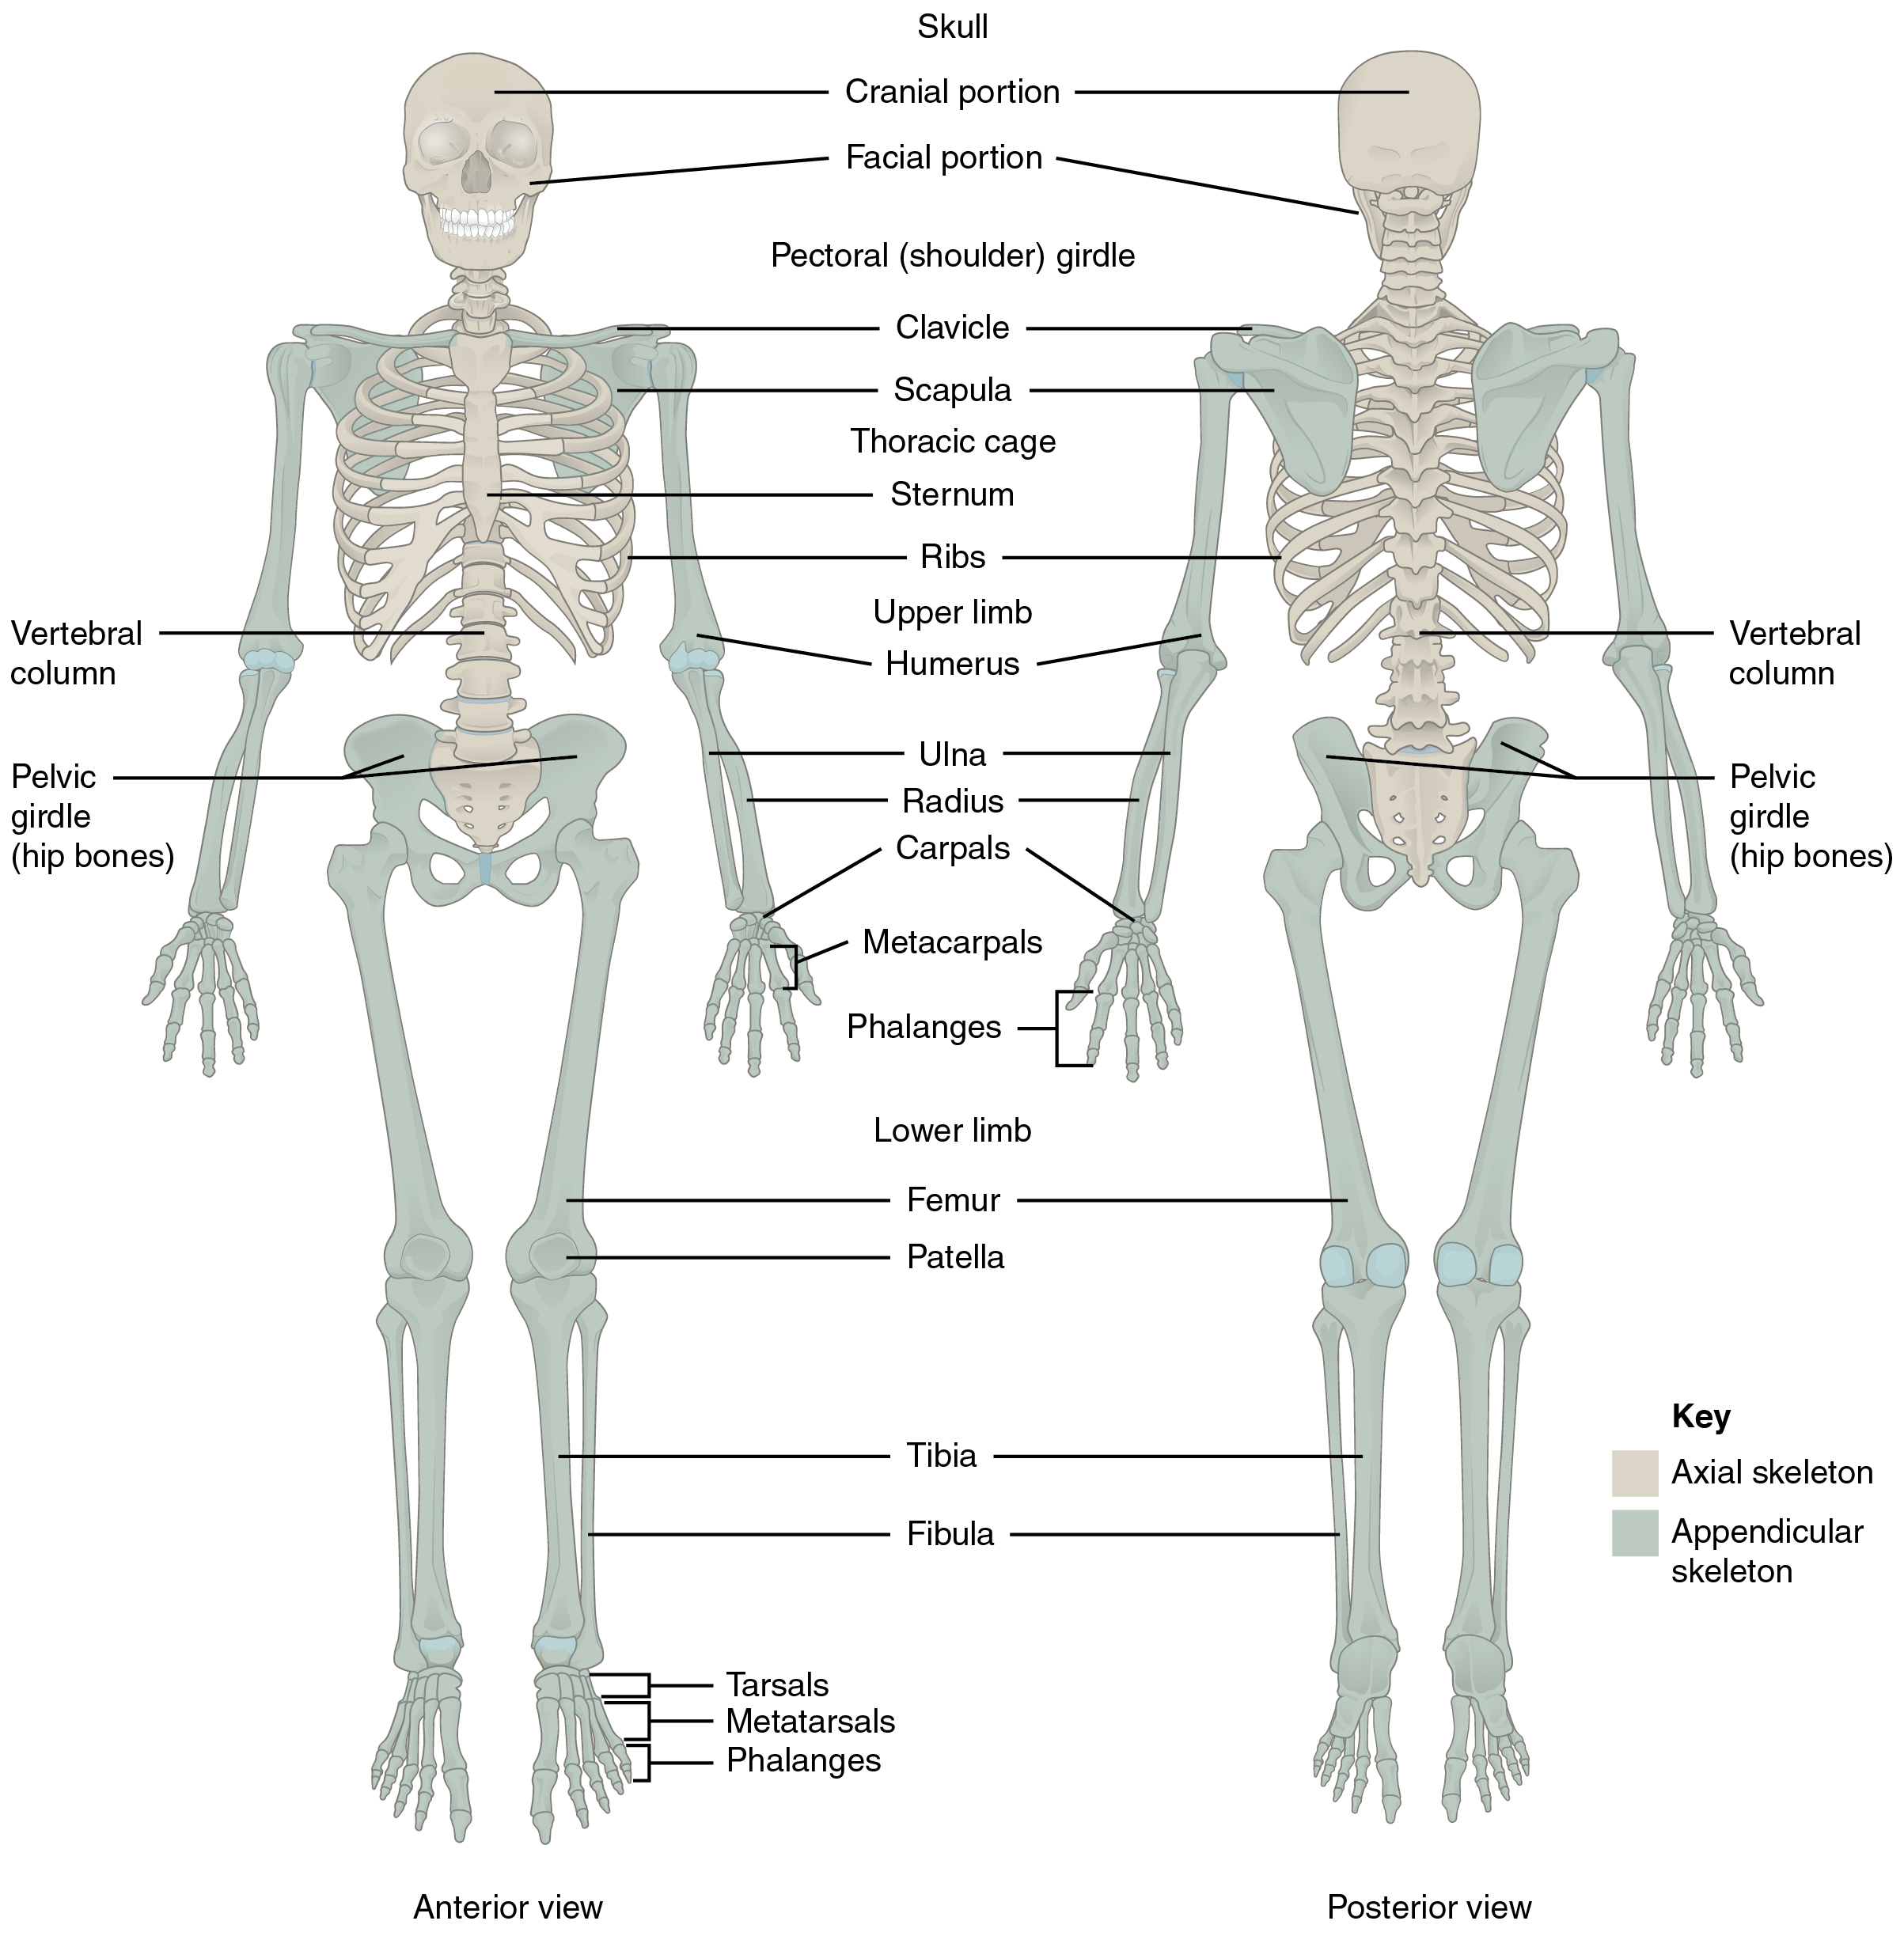 fetal pig skeleton diagram off grid solar power wiring 7 1 divisions of the skeletal system anatomy and physiology this shows human identifies major bones left panel